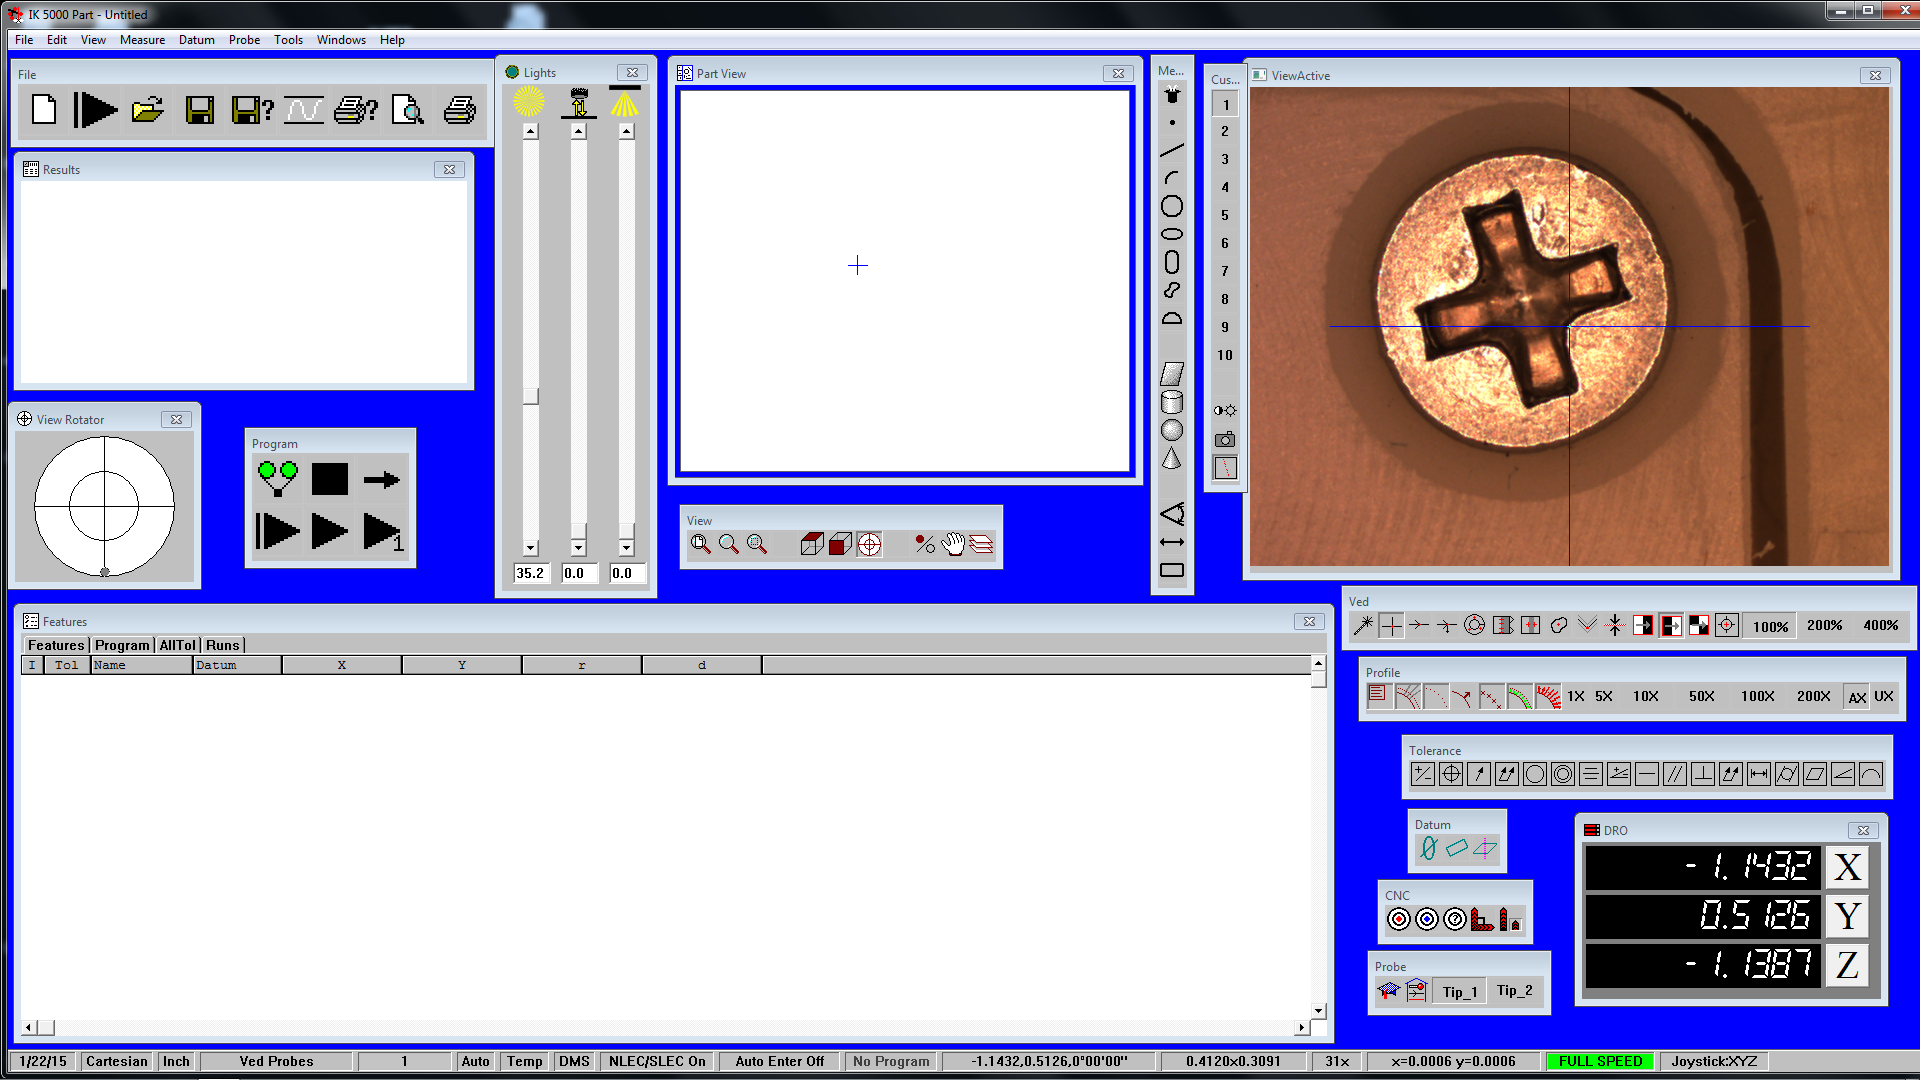 IK5000 Metrology Software